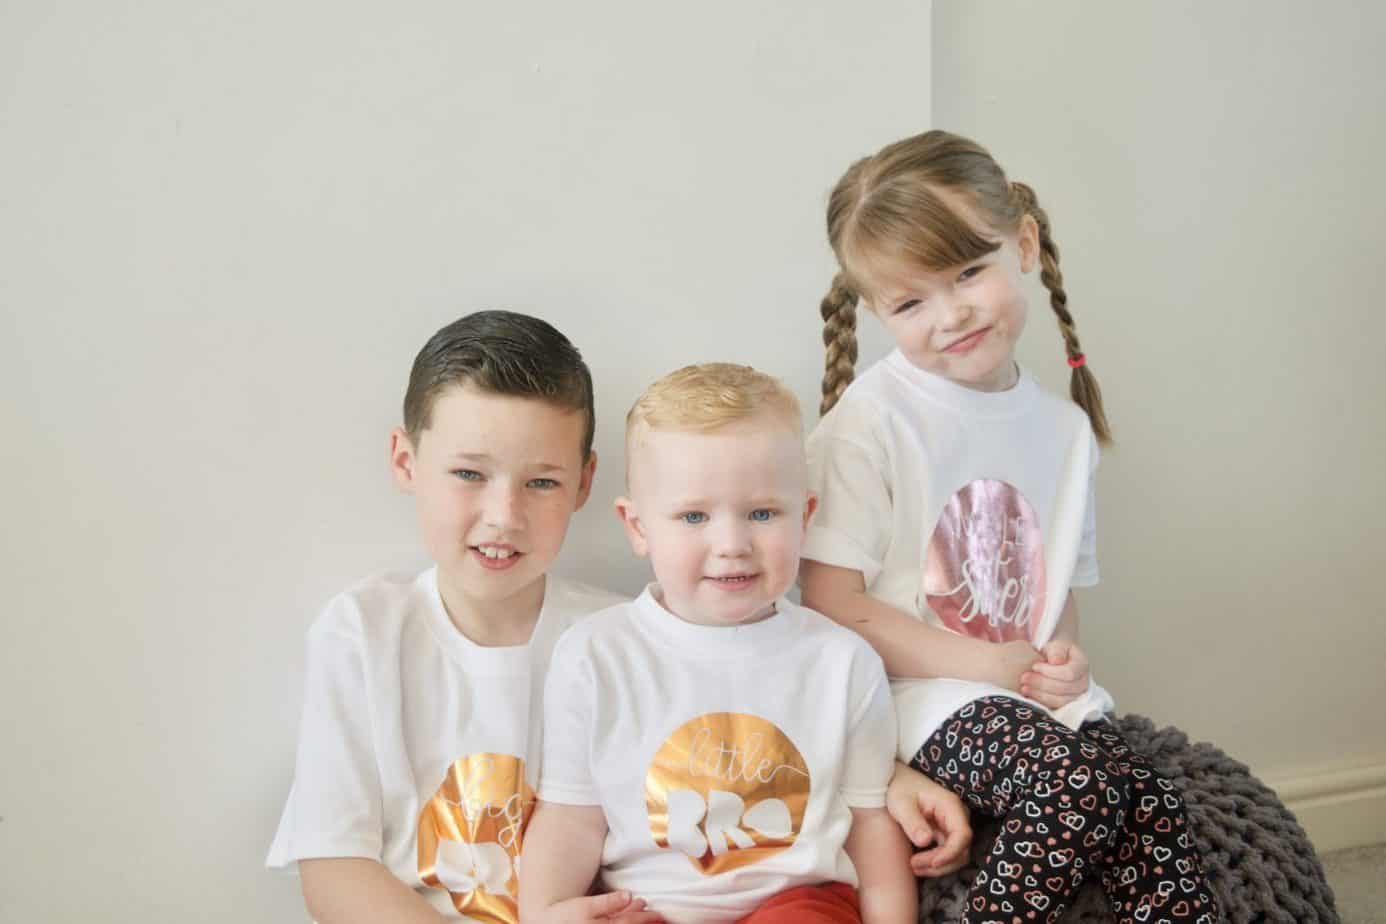 All three wearing twinning kids t-shirts from Teether Baby Boutique